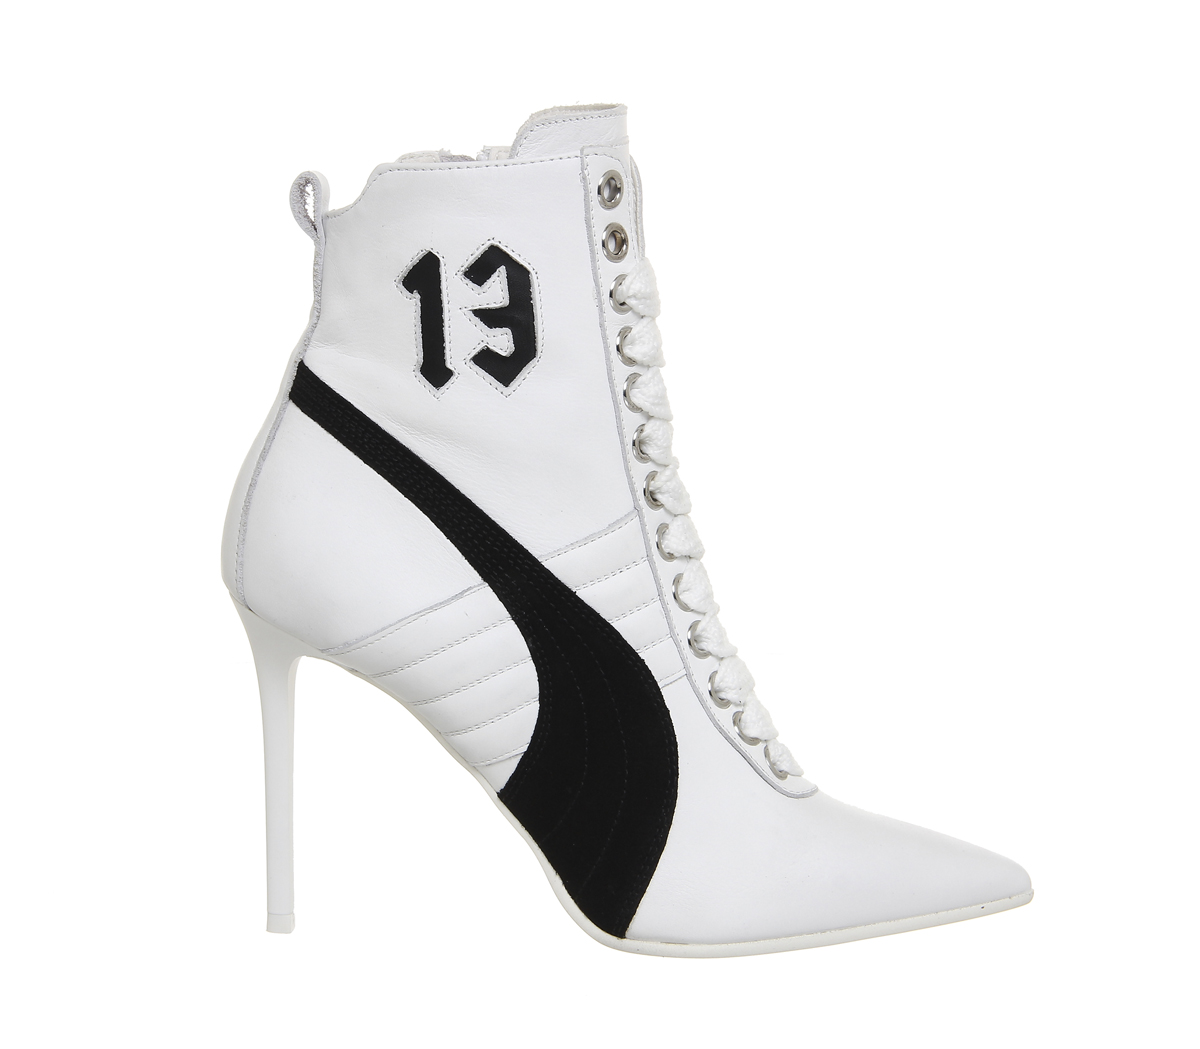 134ae87cefa Sentinel Womens Puma High Heel Sneakers White Leather Trainers Shoes